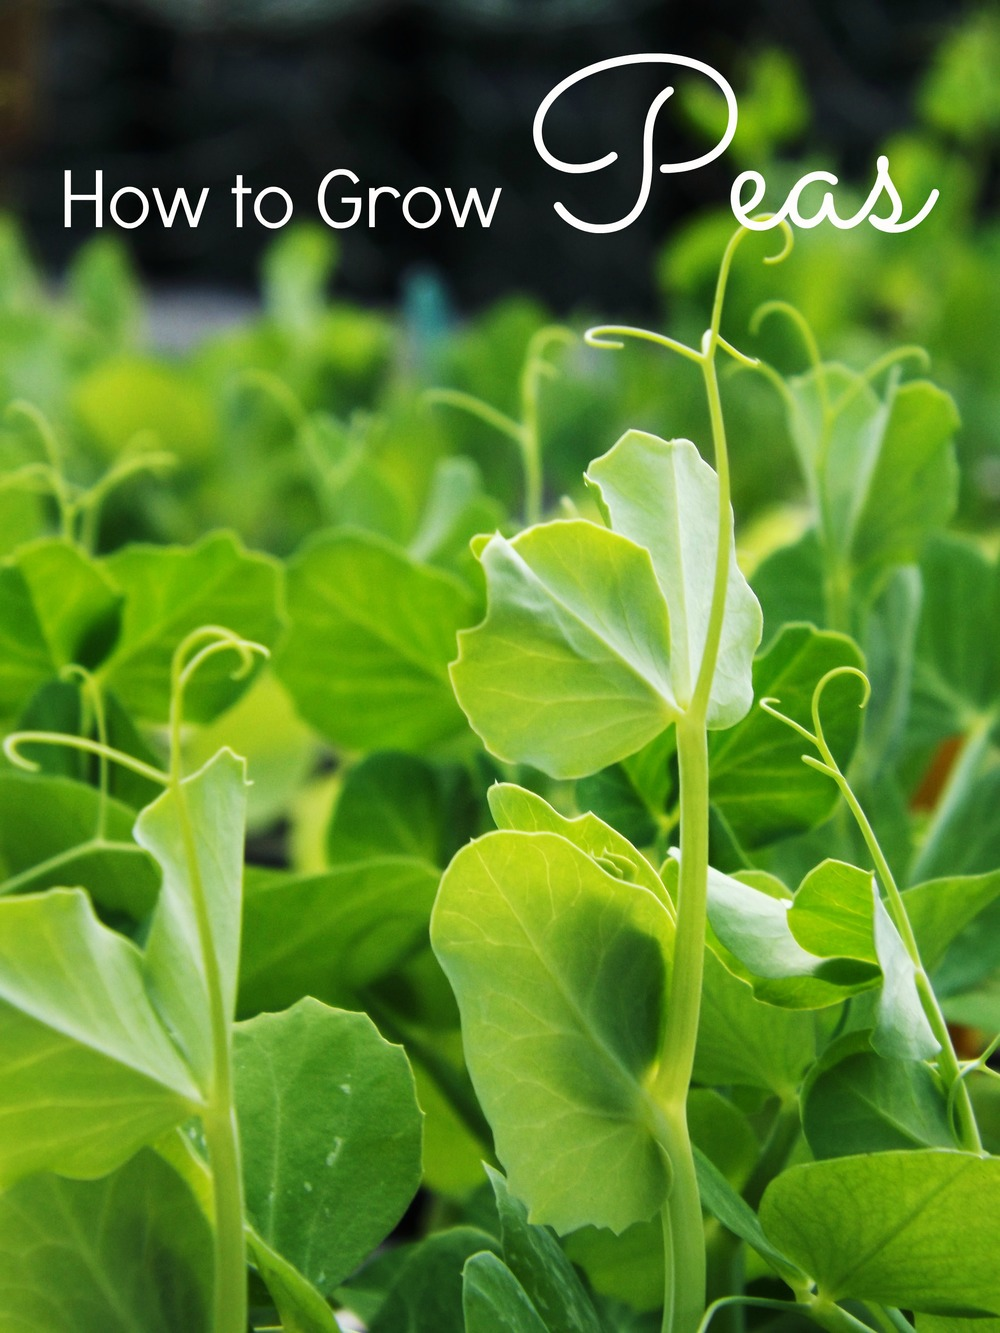 howtogrowpeas